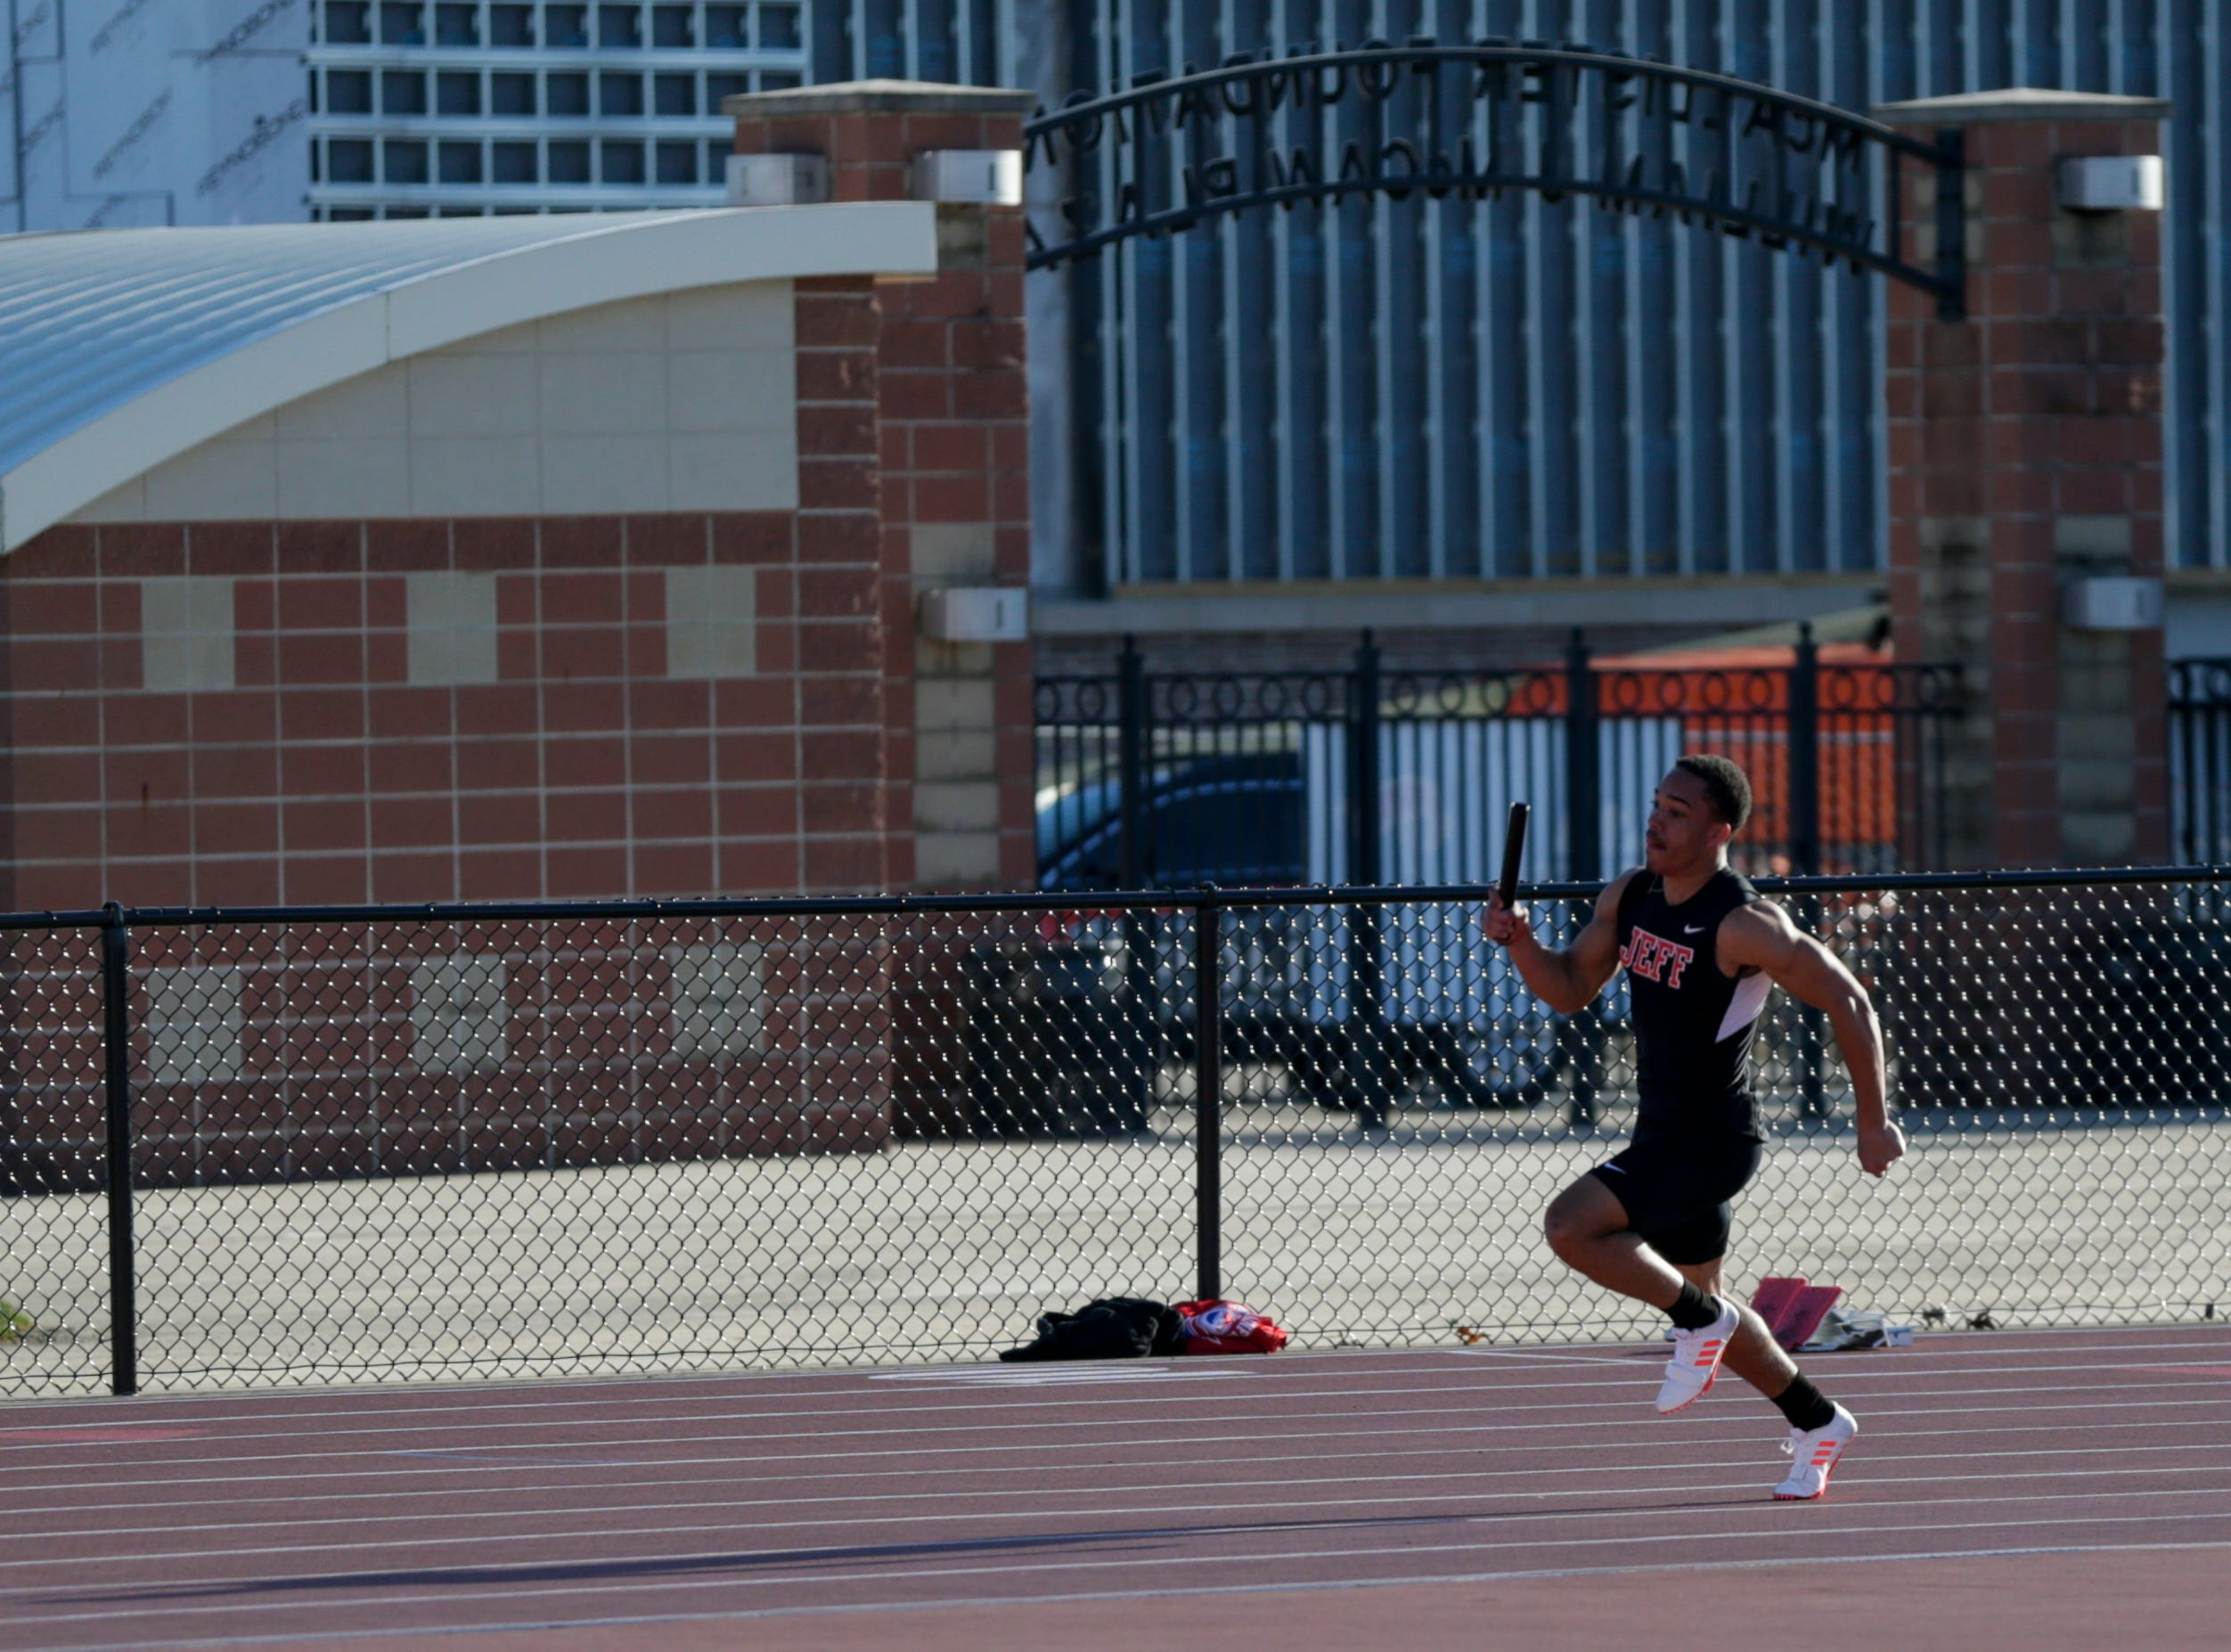 Lafayette Jeff's Bishop Johnson competes in the men's 4x100 meter relay during the 2019 Sprinters Showcase, Friday, April 12, 2019, at Lafayette Jeff High School in Lafayette.